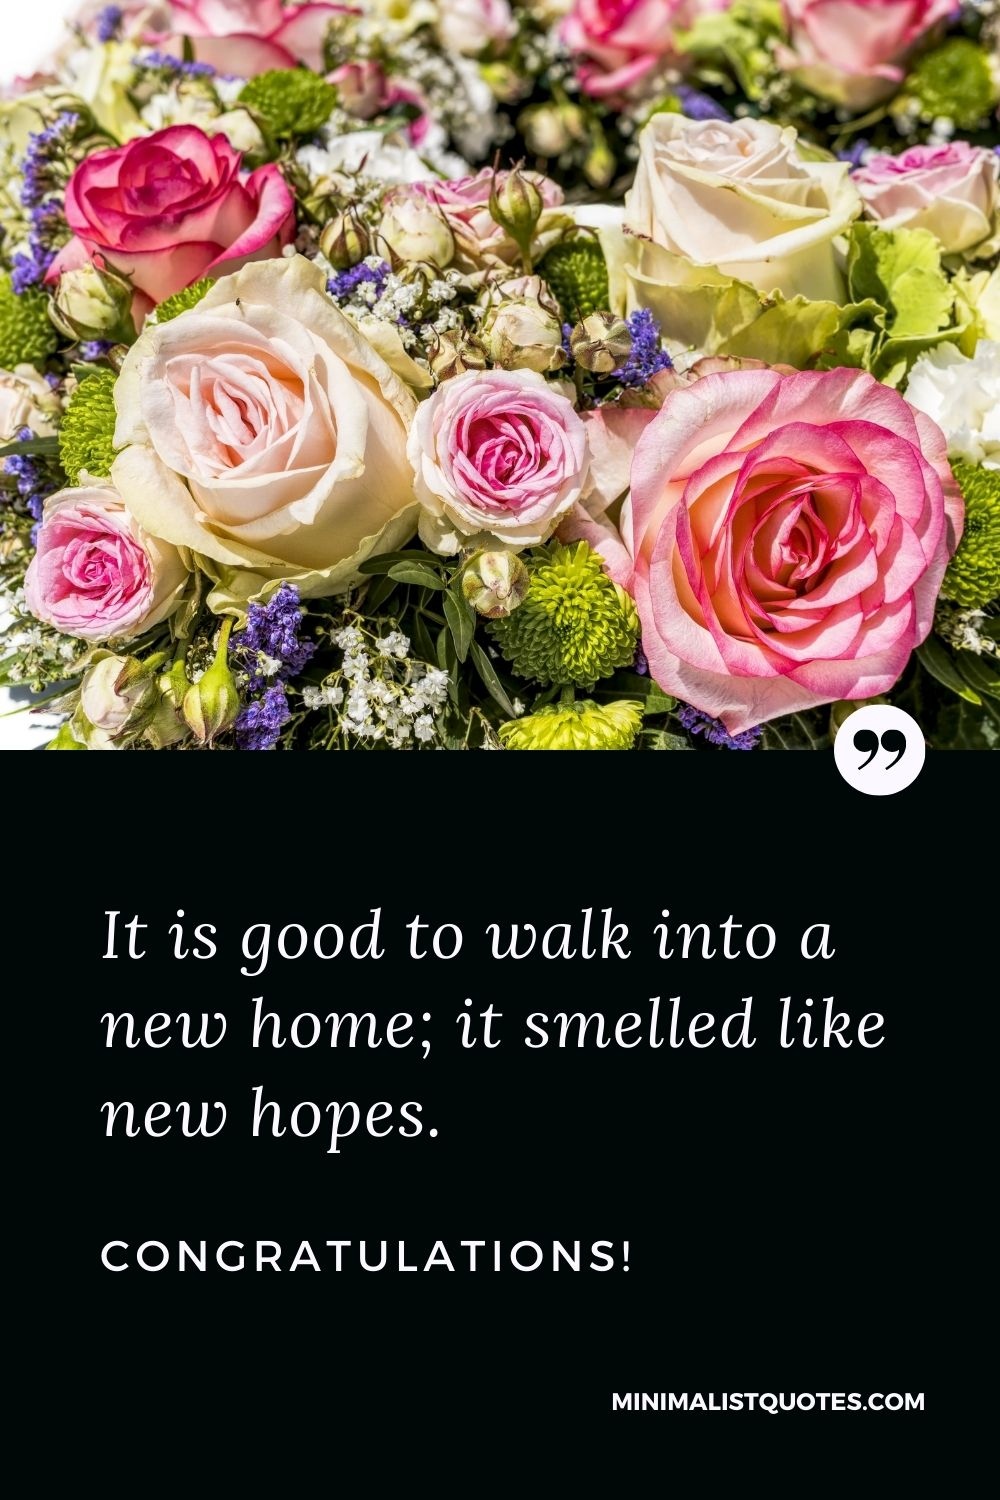 New Home Wish, Quote & Message With Image: It is good to walk into a new home; it smelled like new hopes. Congratulations!